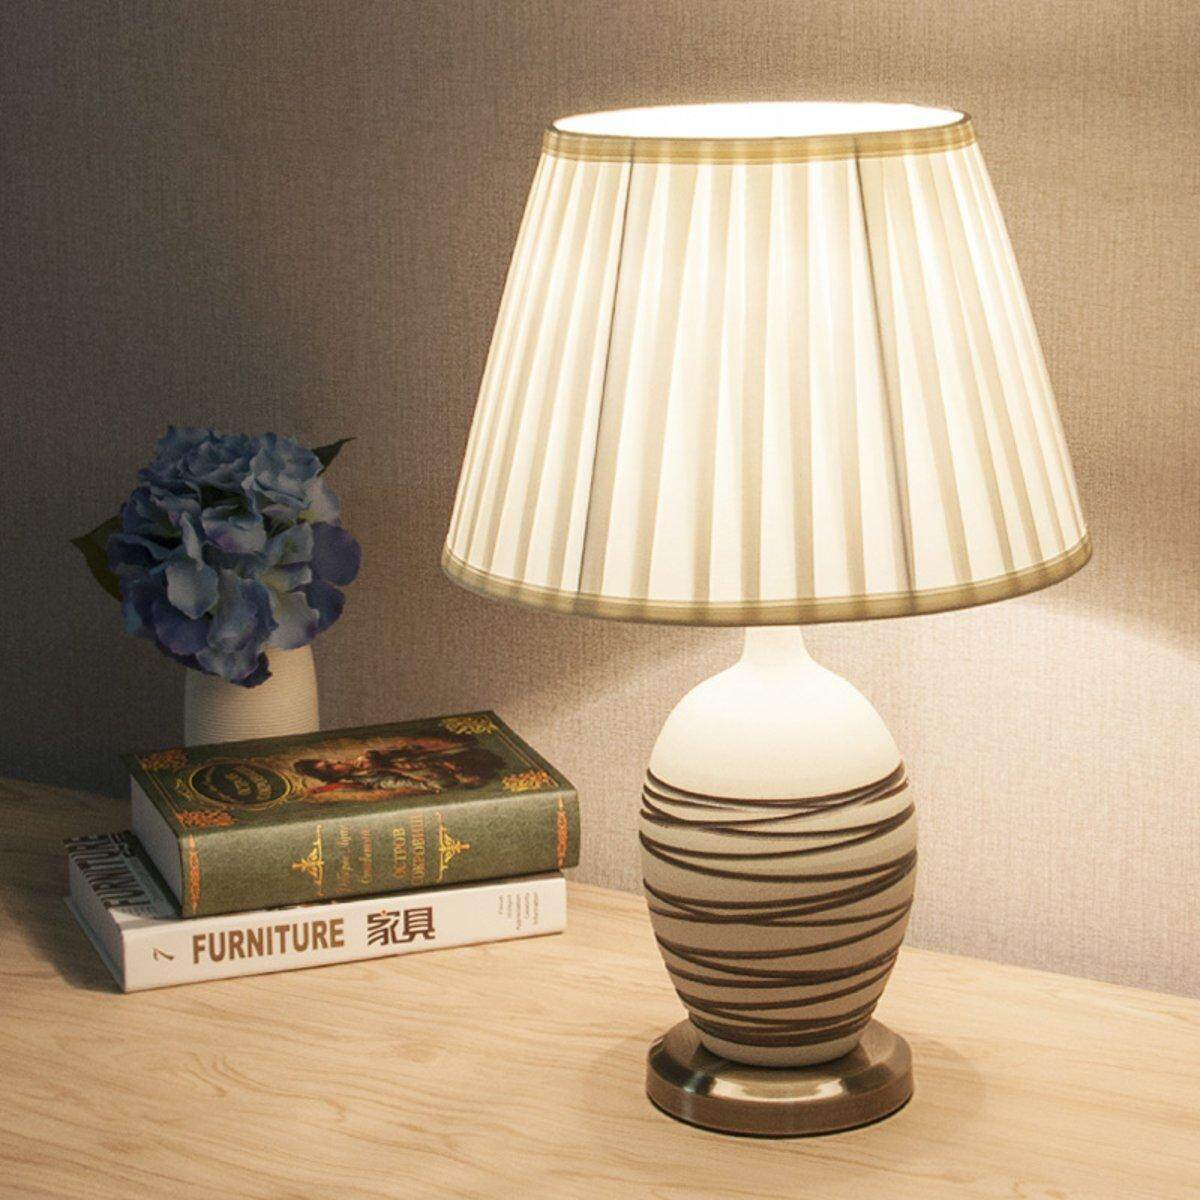 6 To 20 Fabric Box Pleat Lamp Shade Table Light Lampshade Mink Cream Ivoryr 260mm By Glimmer.